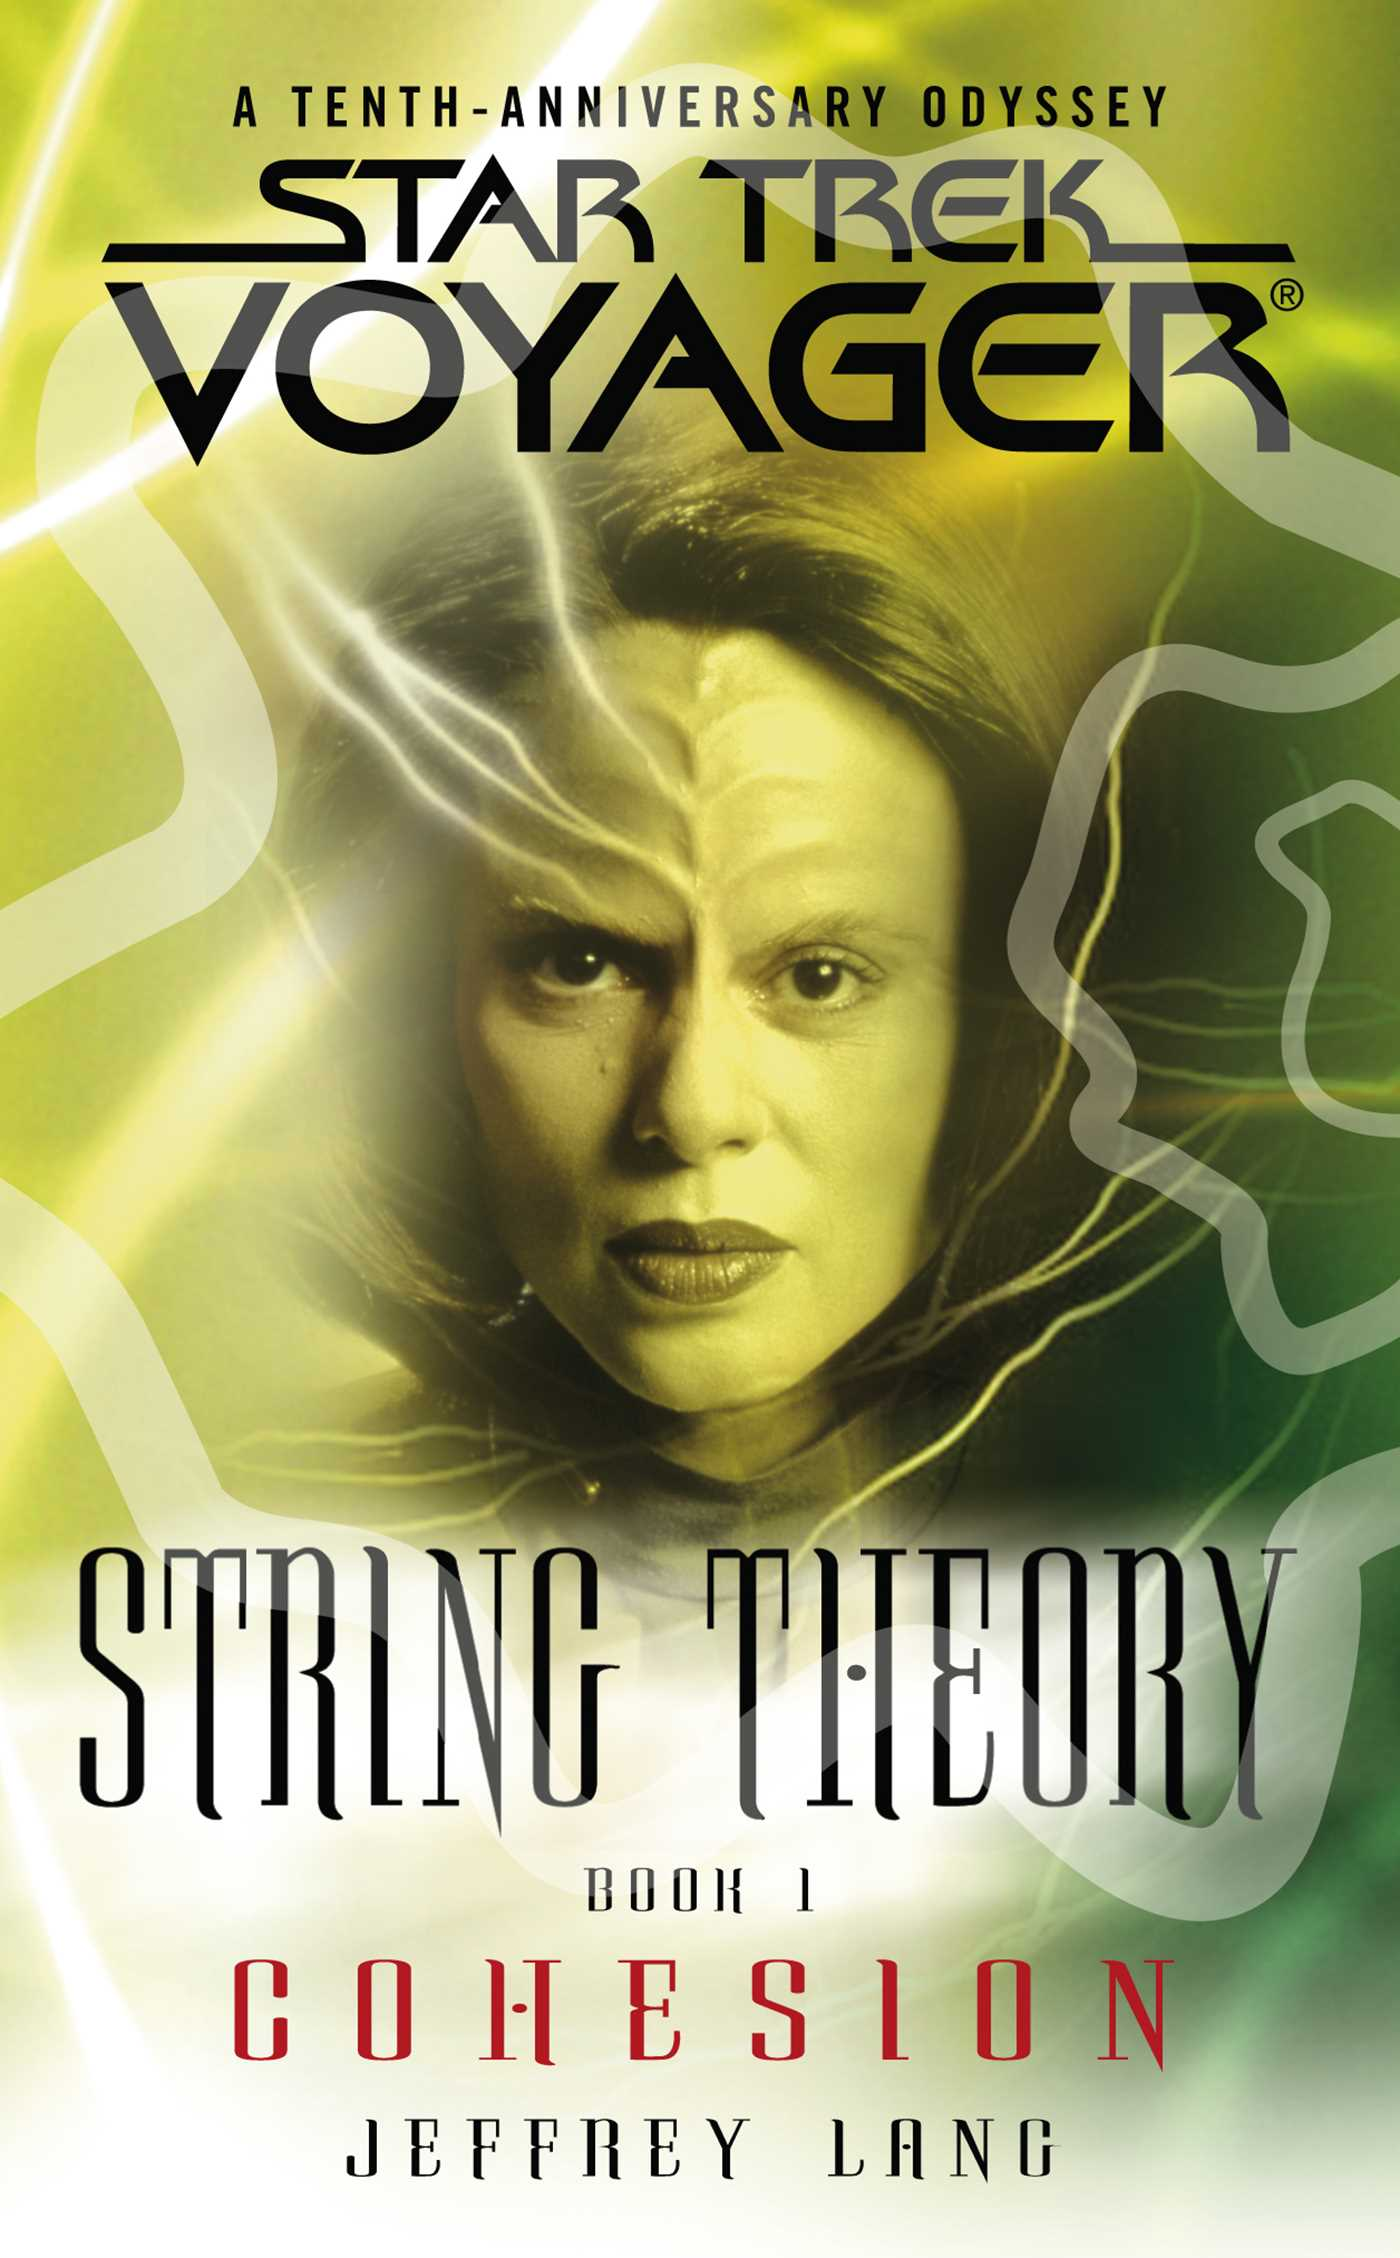 Star trek voyager string theory 1 cohesion 9781416510314 hr